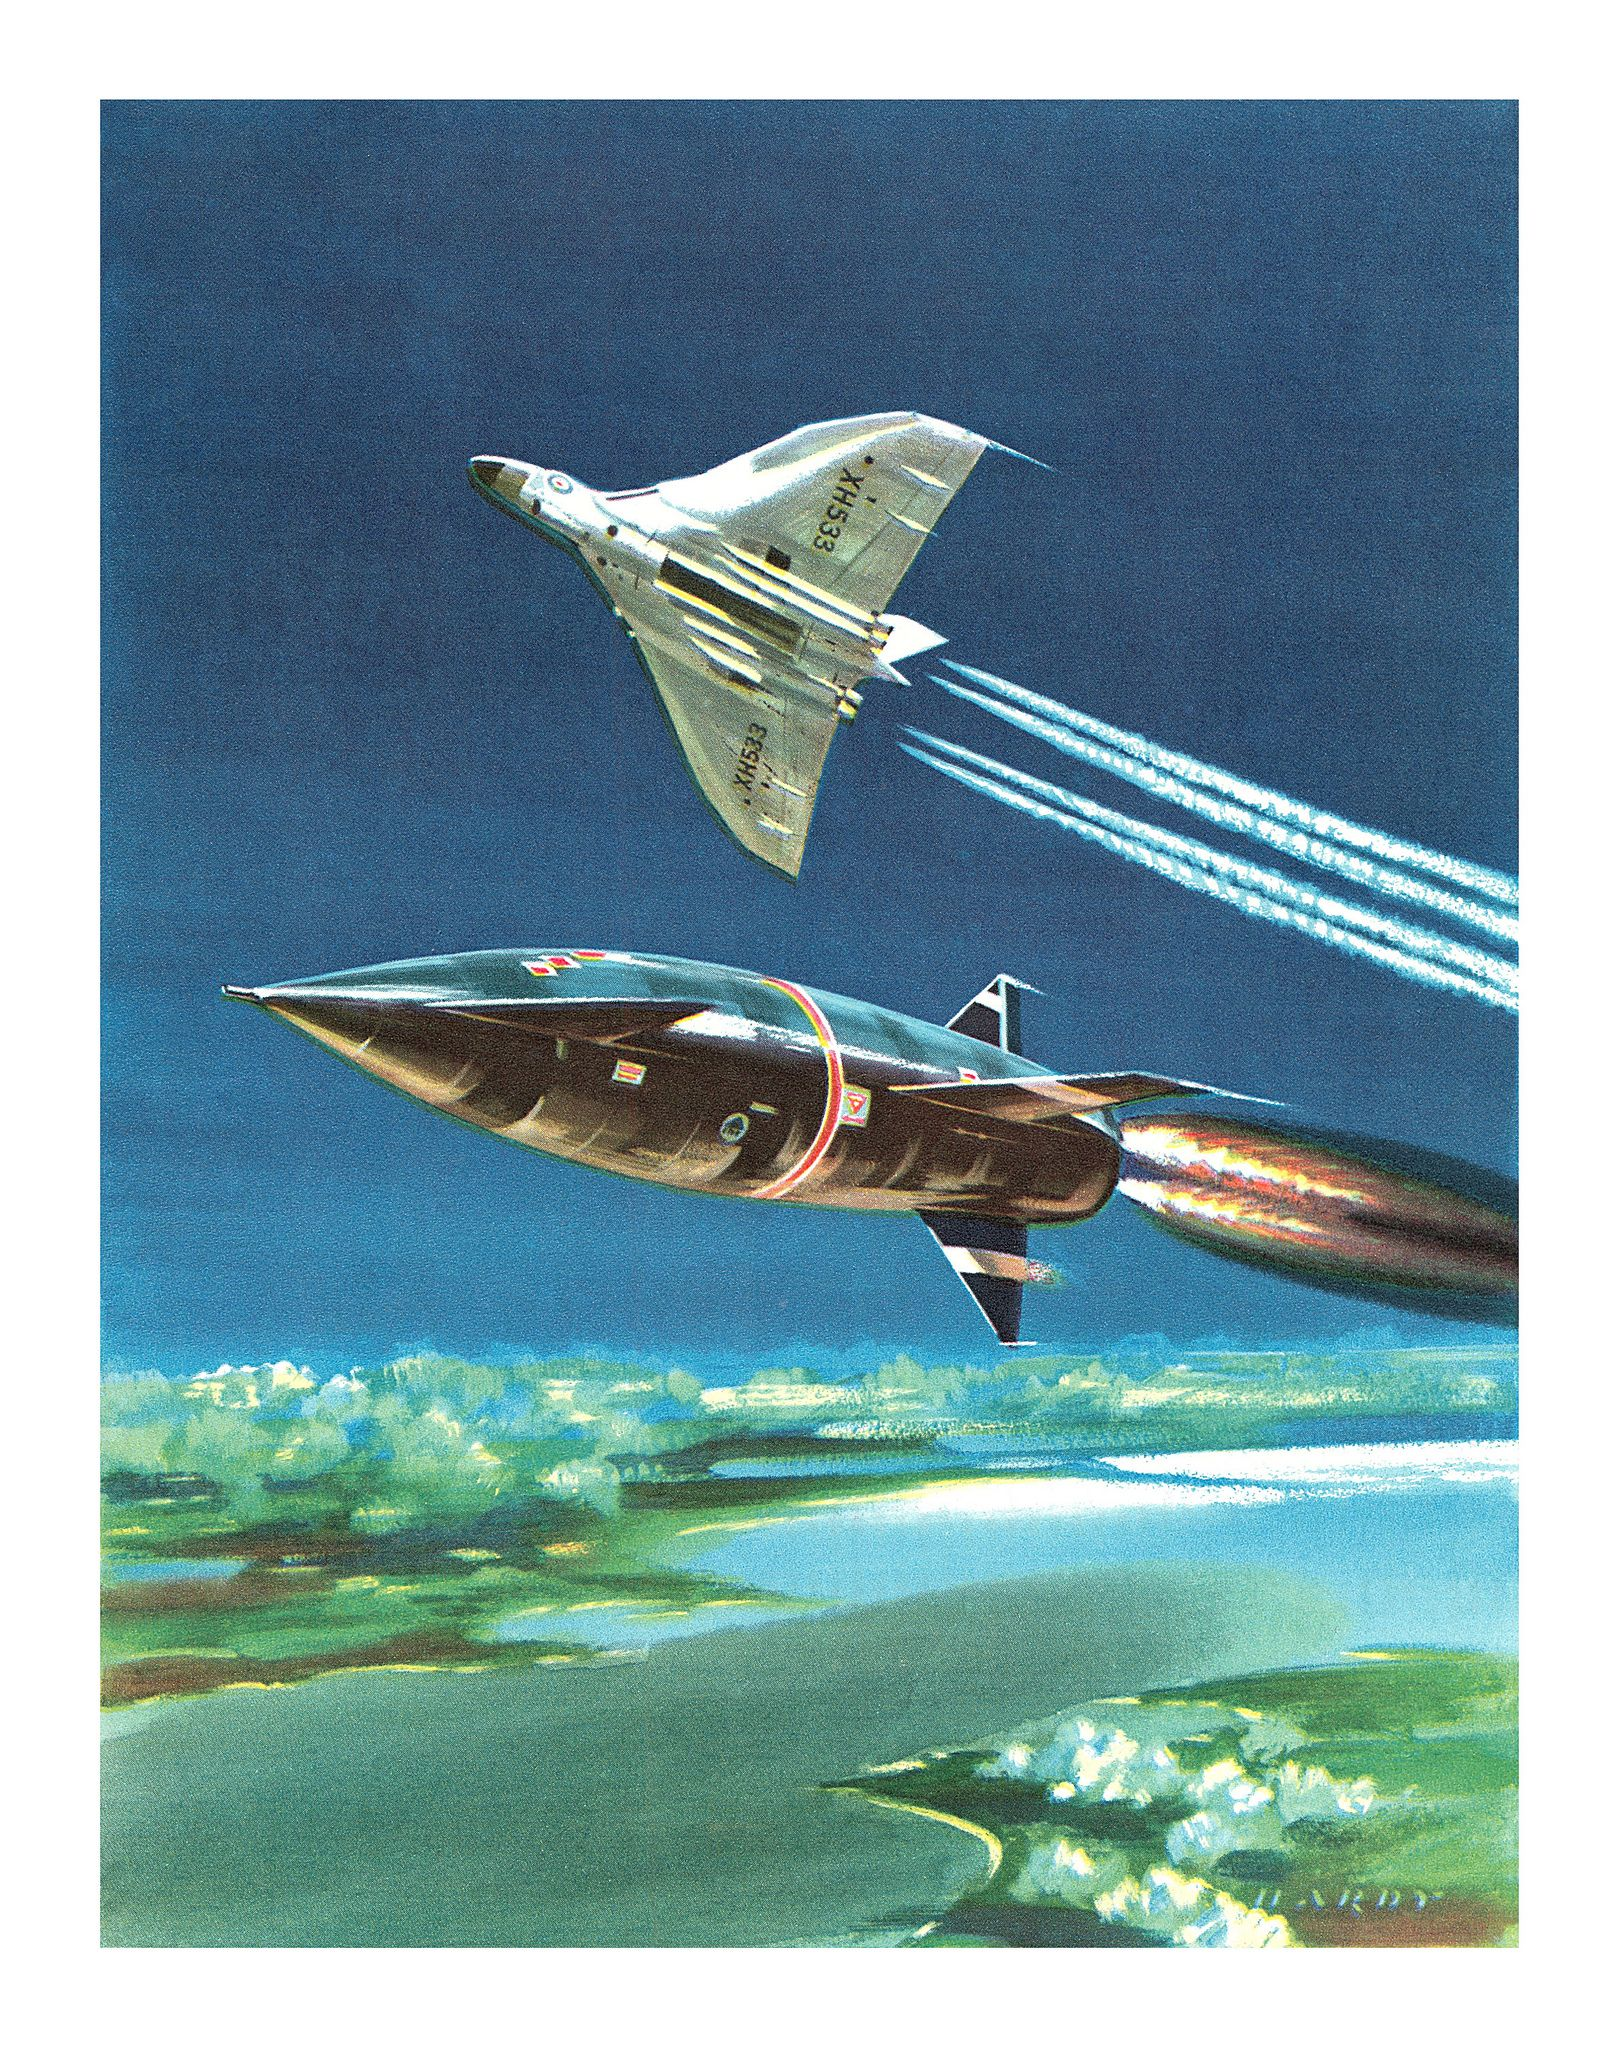 https://flic.kr/p/ow1dgx | 'The present and future – Avro Vulcan B2 launching a Blue Steel stand-off bomb' | Illustration by Hardy for the article Fifty Fighting Years – Half A Century Of British Air Power by John Taylor. From the Eagle Annual, 1963.